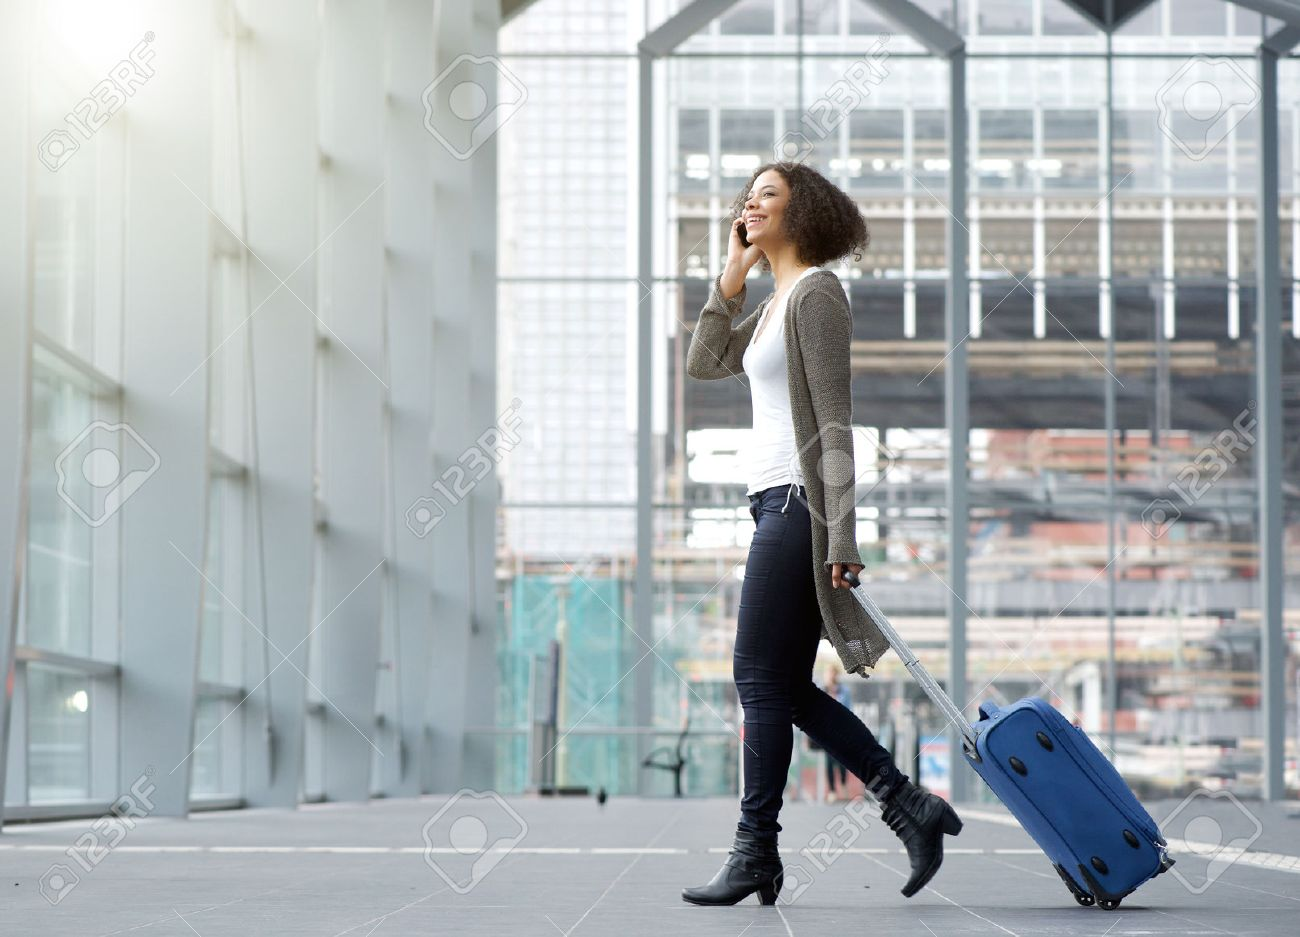 Full length side portrait of a traveling young woman with mobile phone and suitcase Stock Photo - 45866907